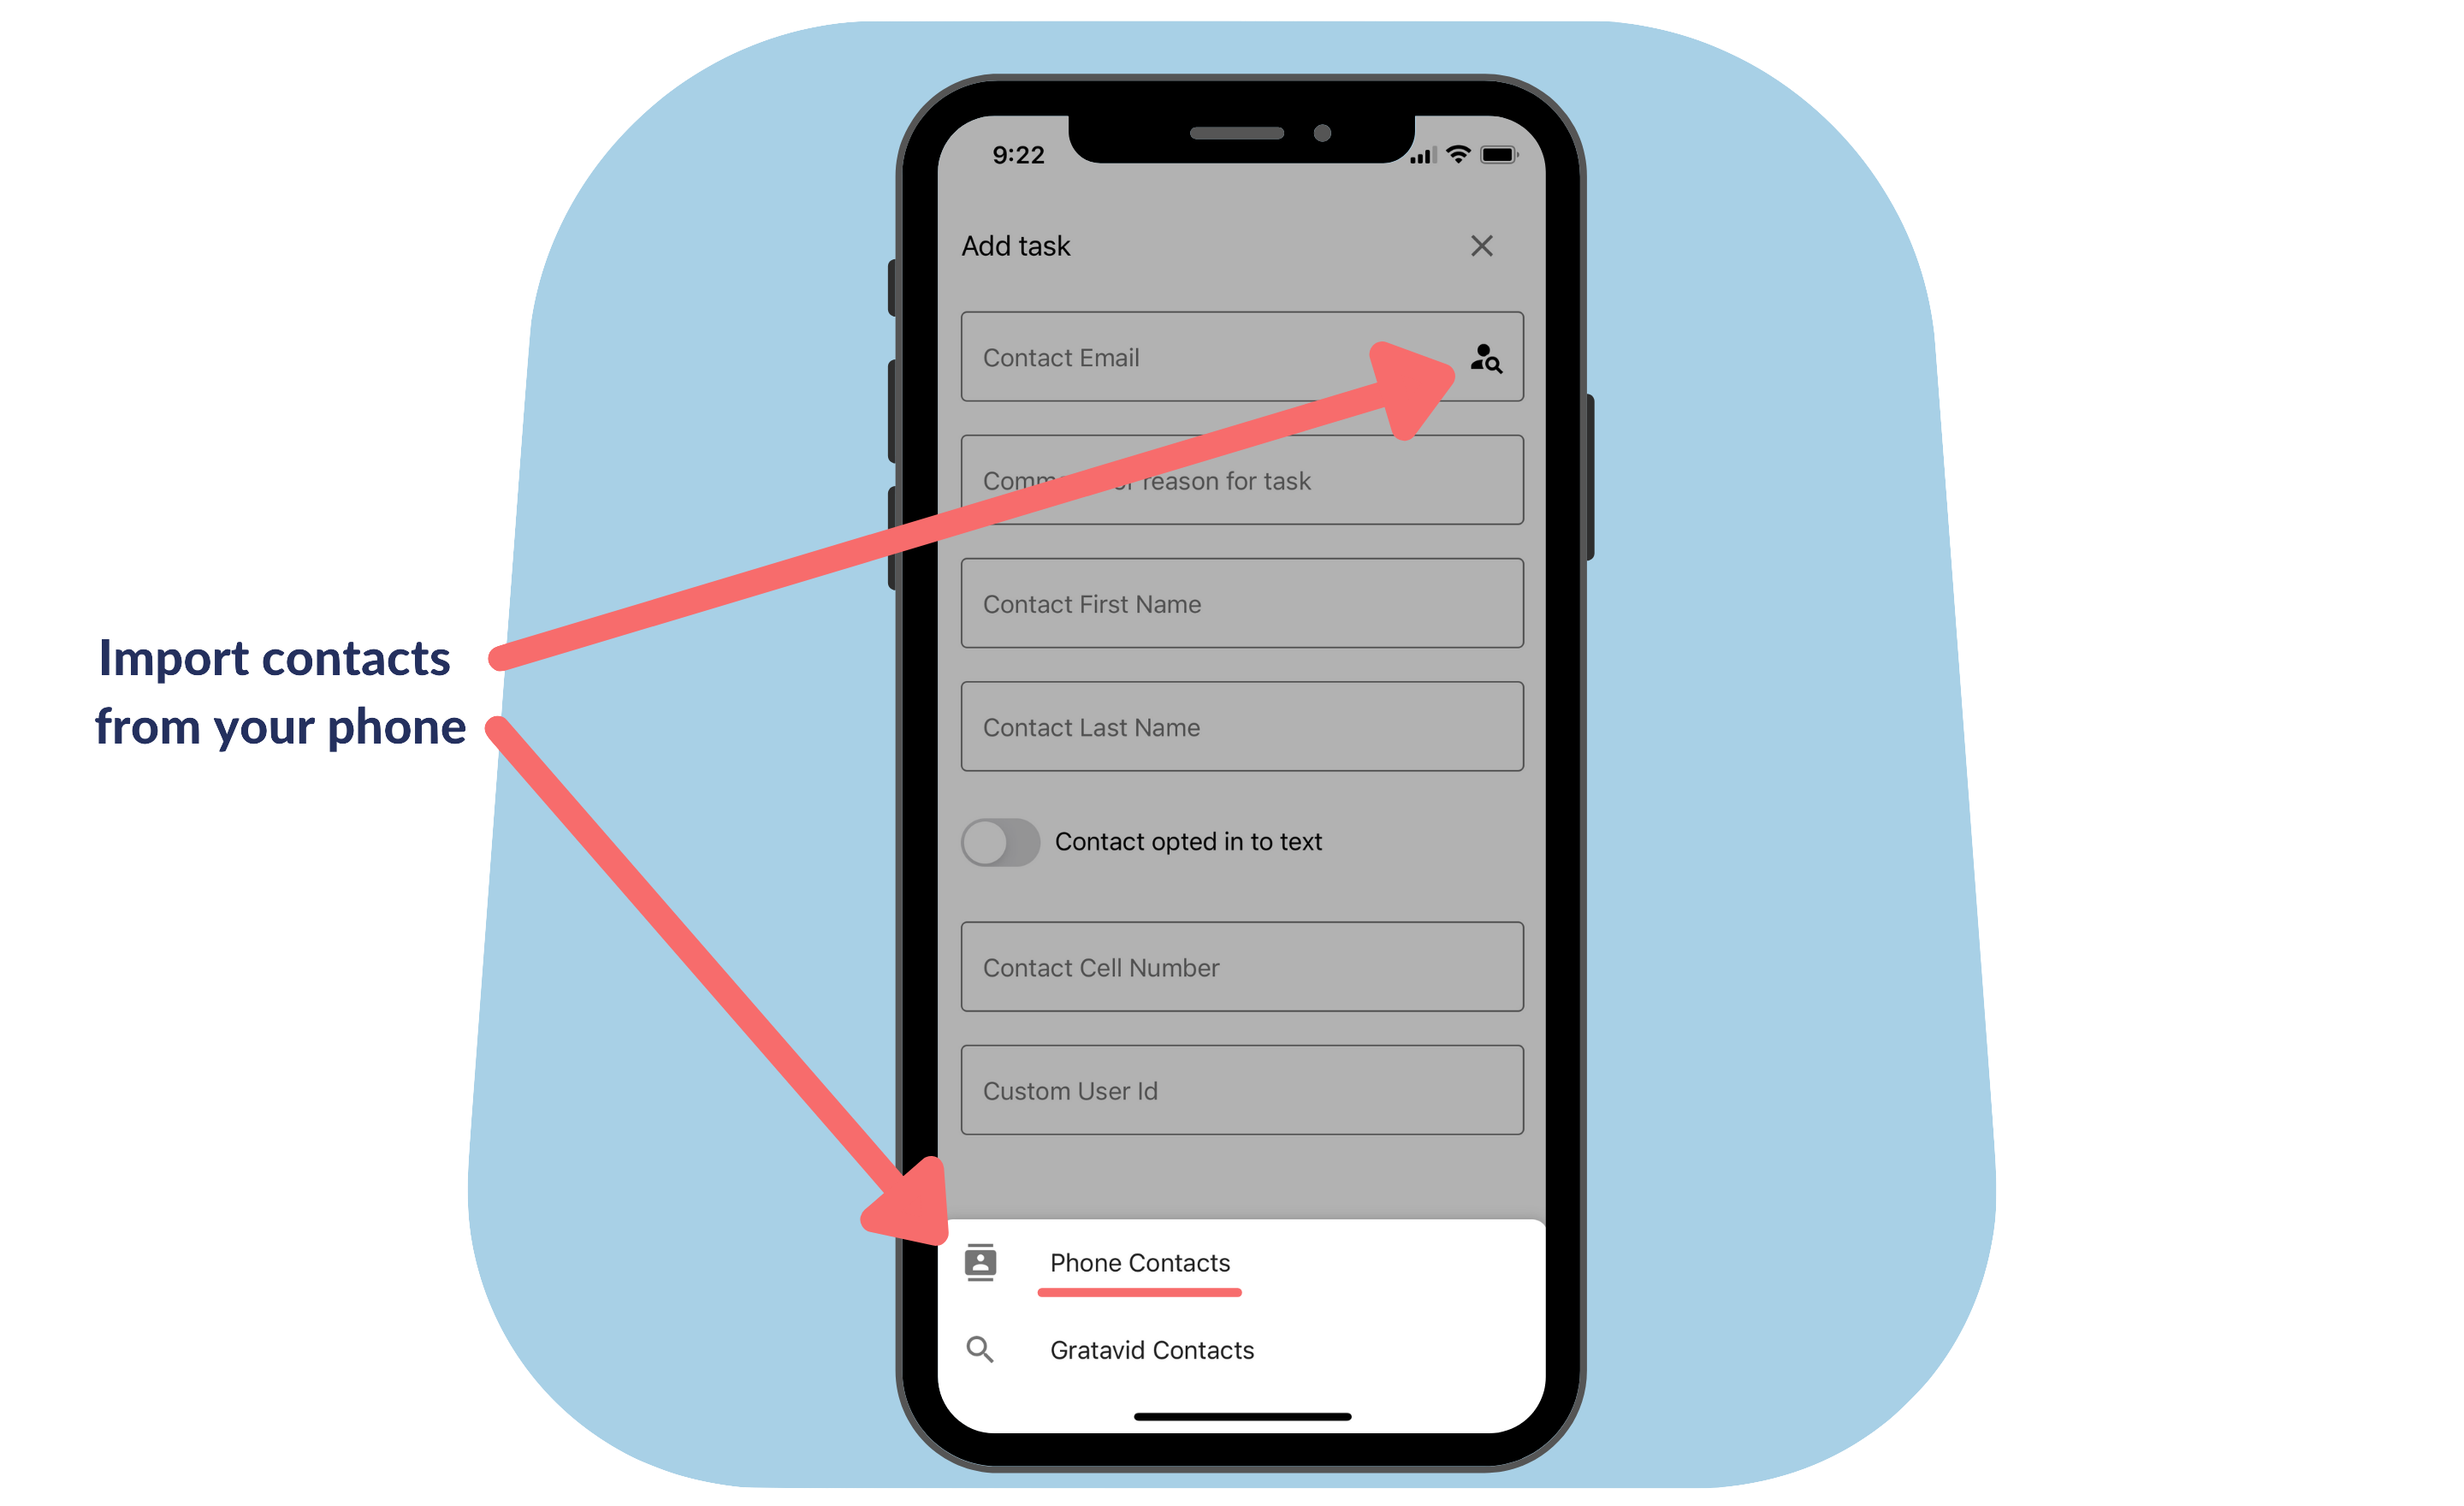 Hidden app features - import contacts from phone